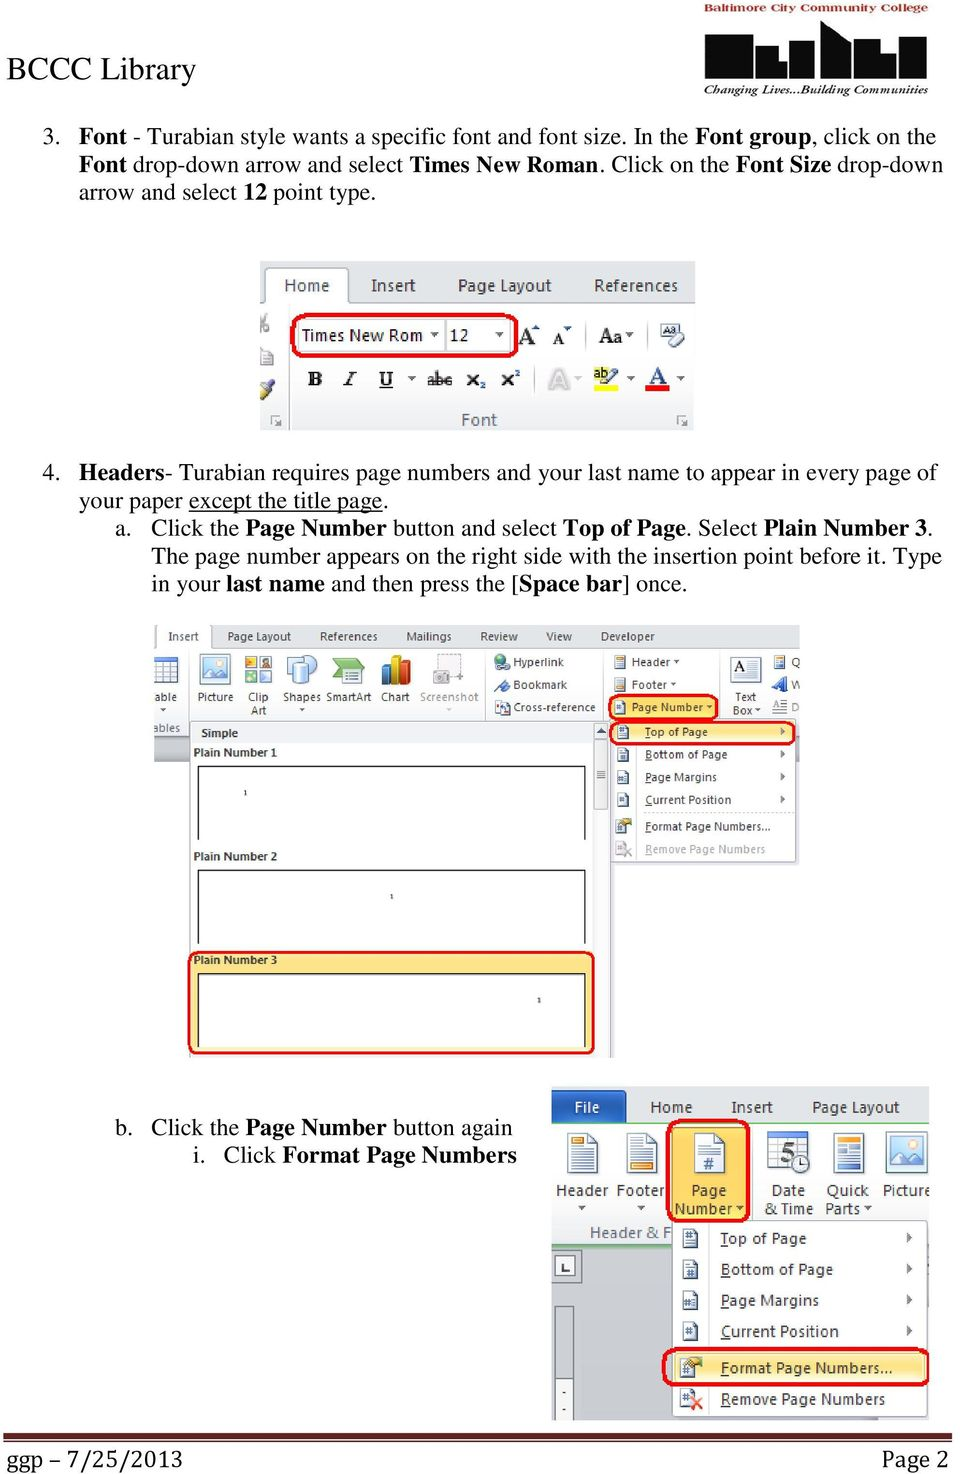 Headers- Turabian requires page numbers and your last name to appear in every page of your paper except the title page. a. Click the Page Number button and select Top of Page.